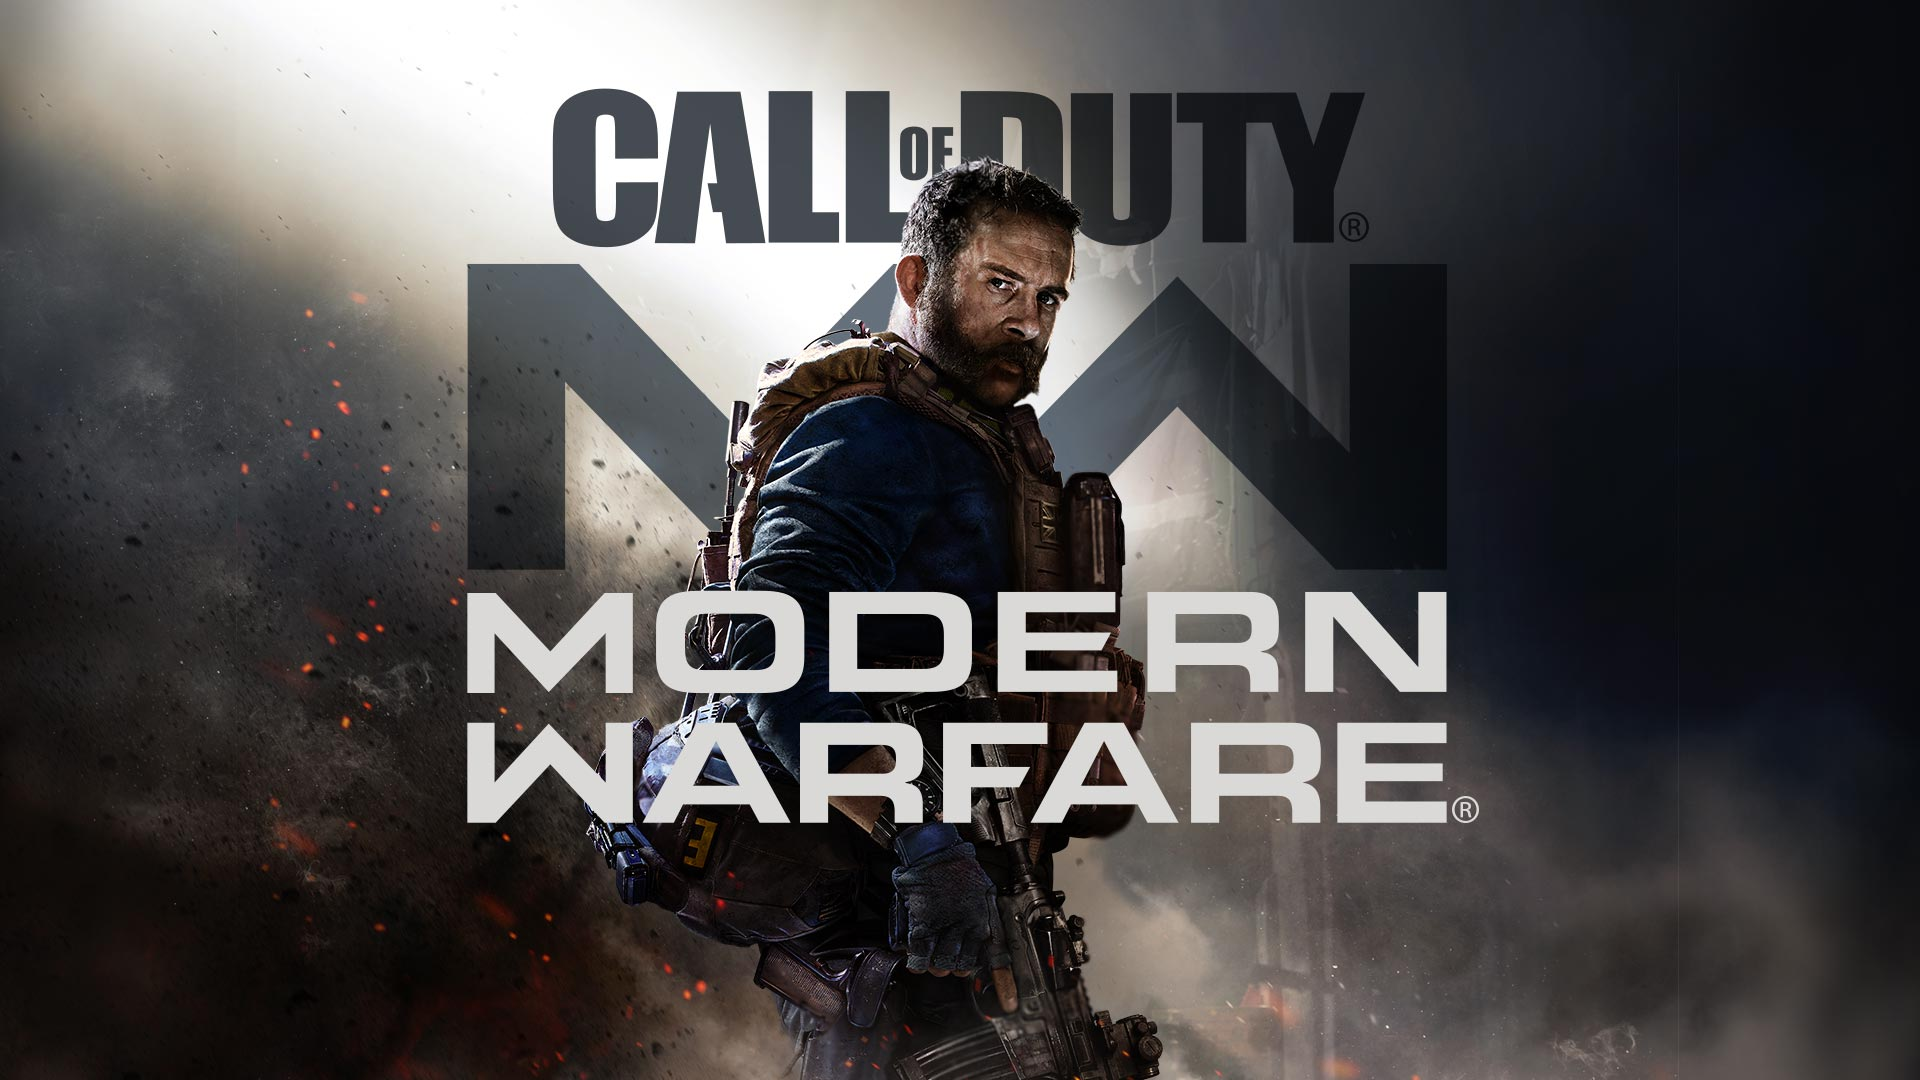 Call of Duty Modern Warfare Warzone iOS iPhone Mobile Version Full Free Game Download